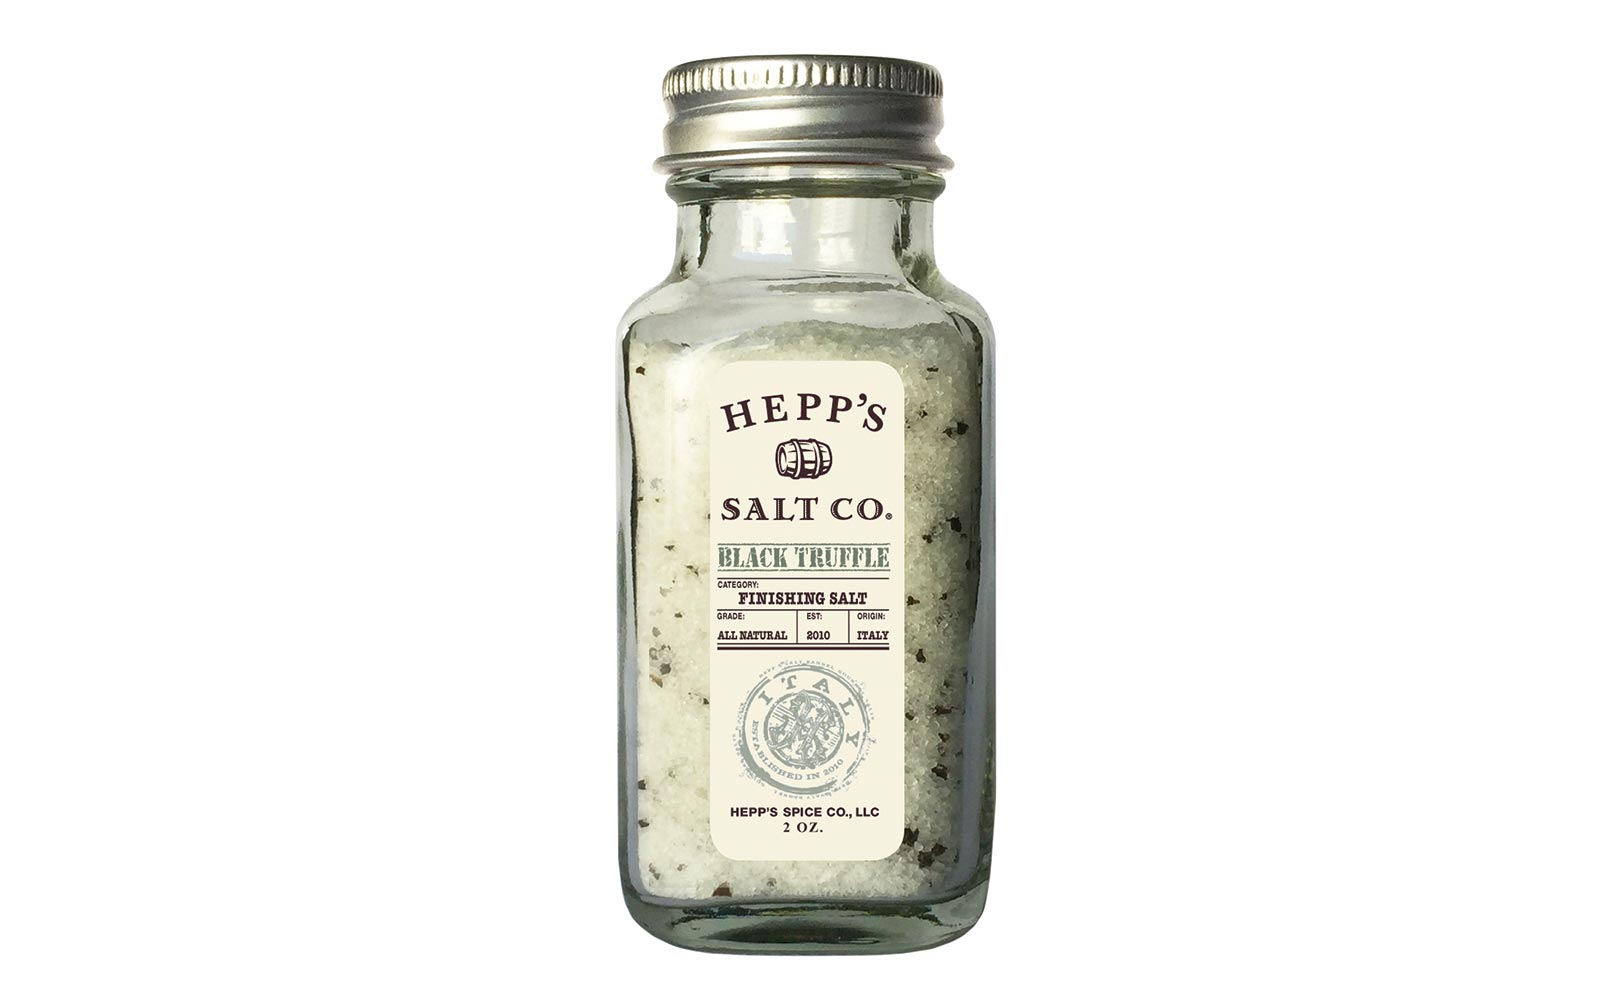 Hepp's Black Truffle Salt